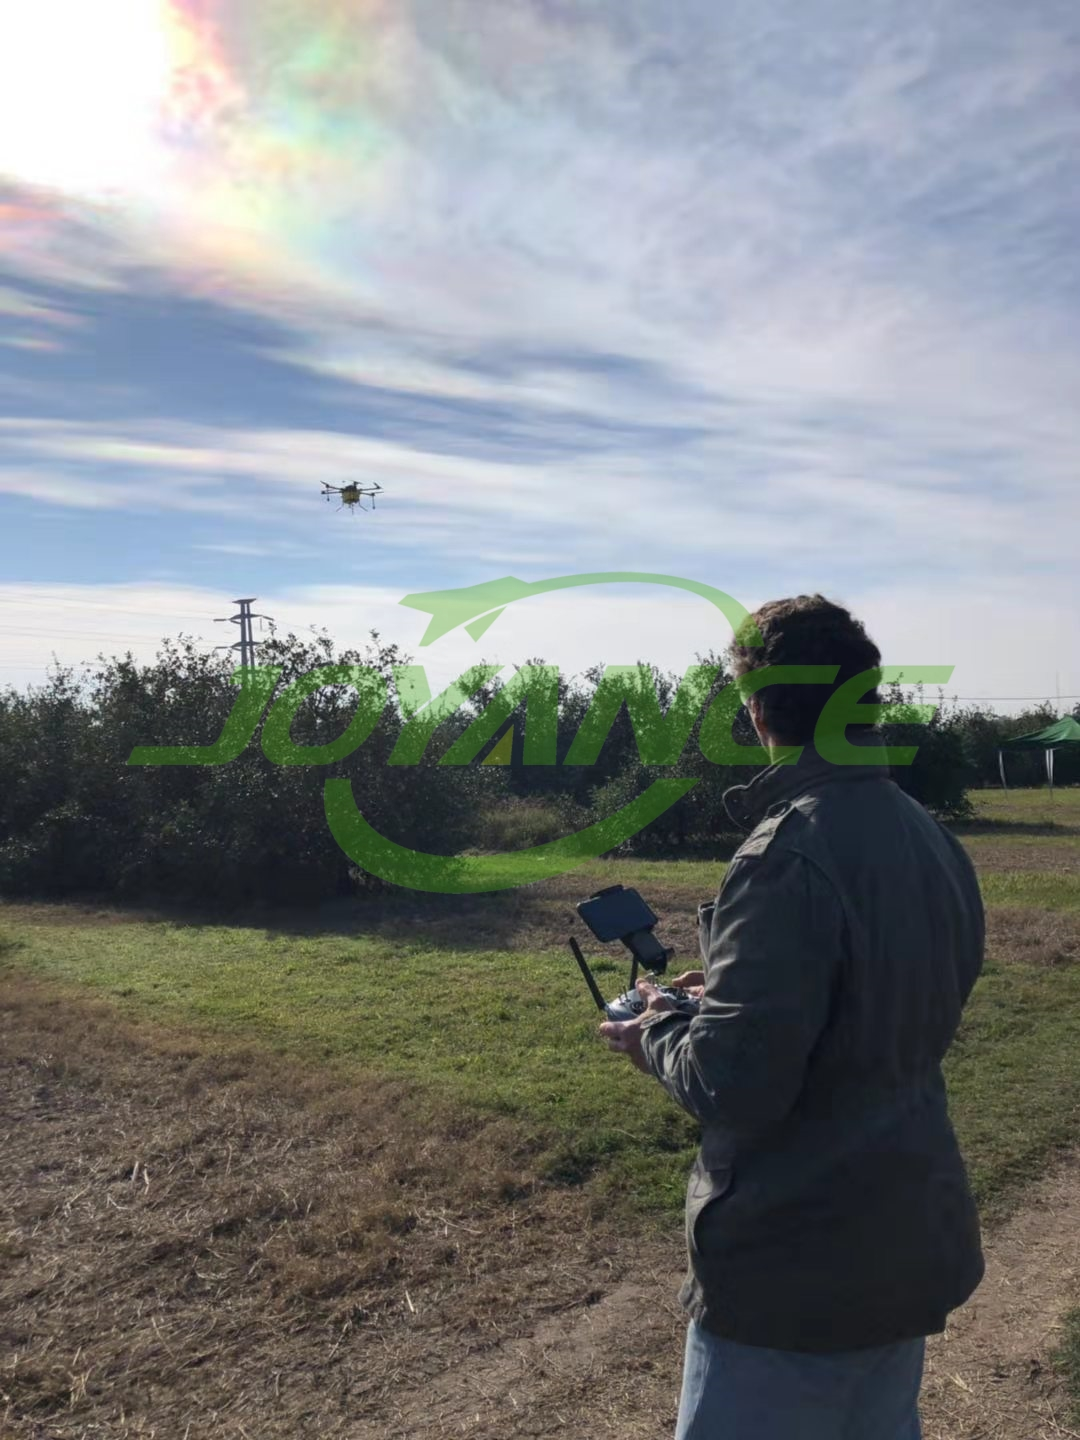 drone spraying demo and promotion